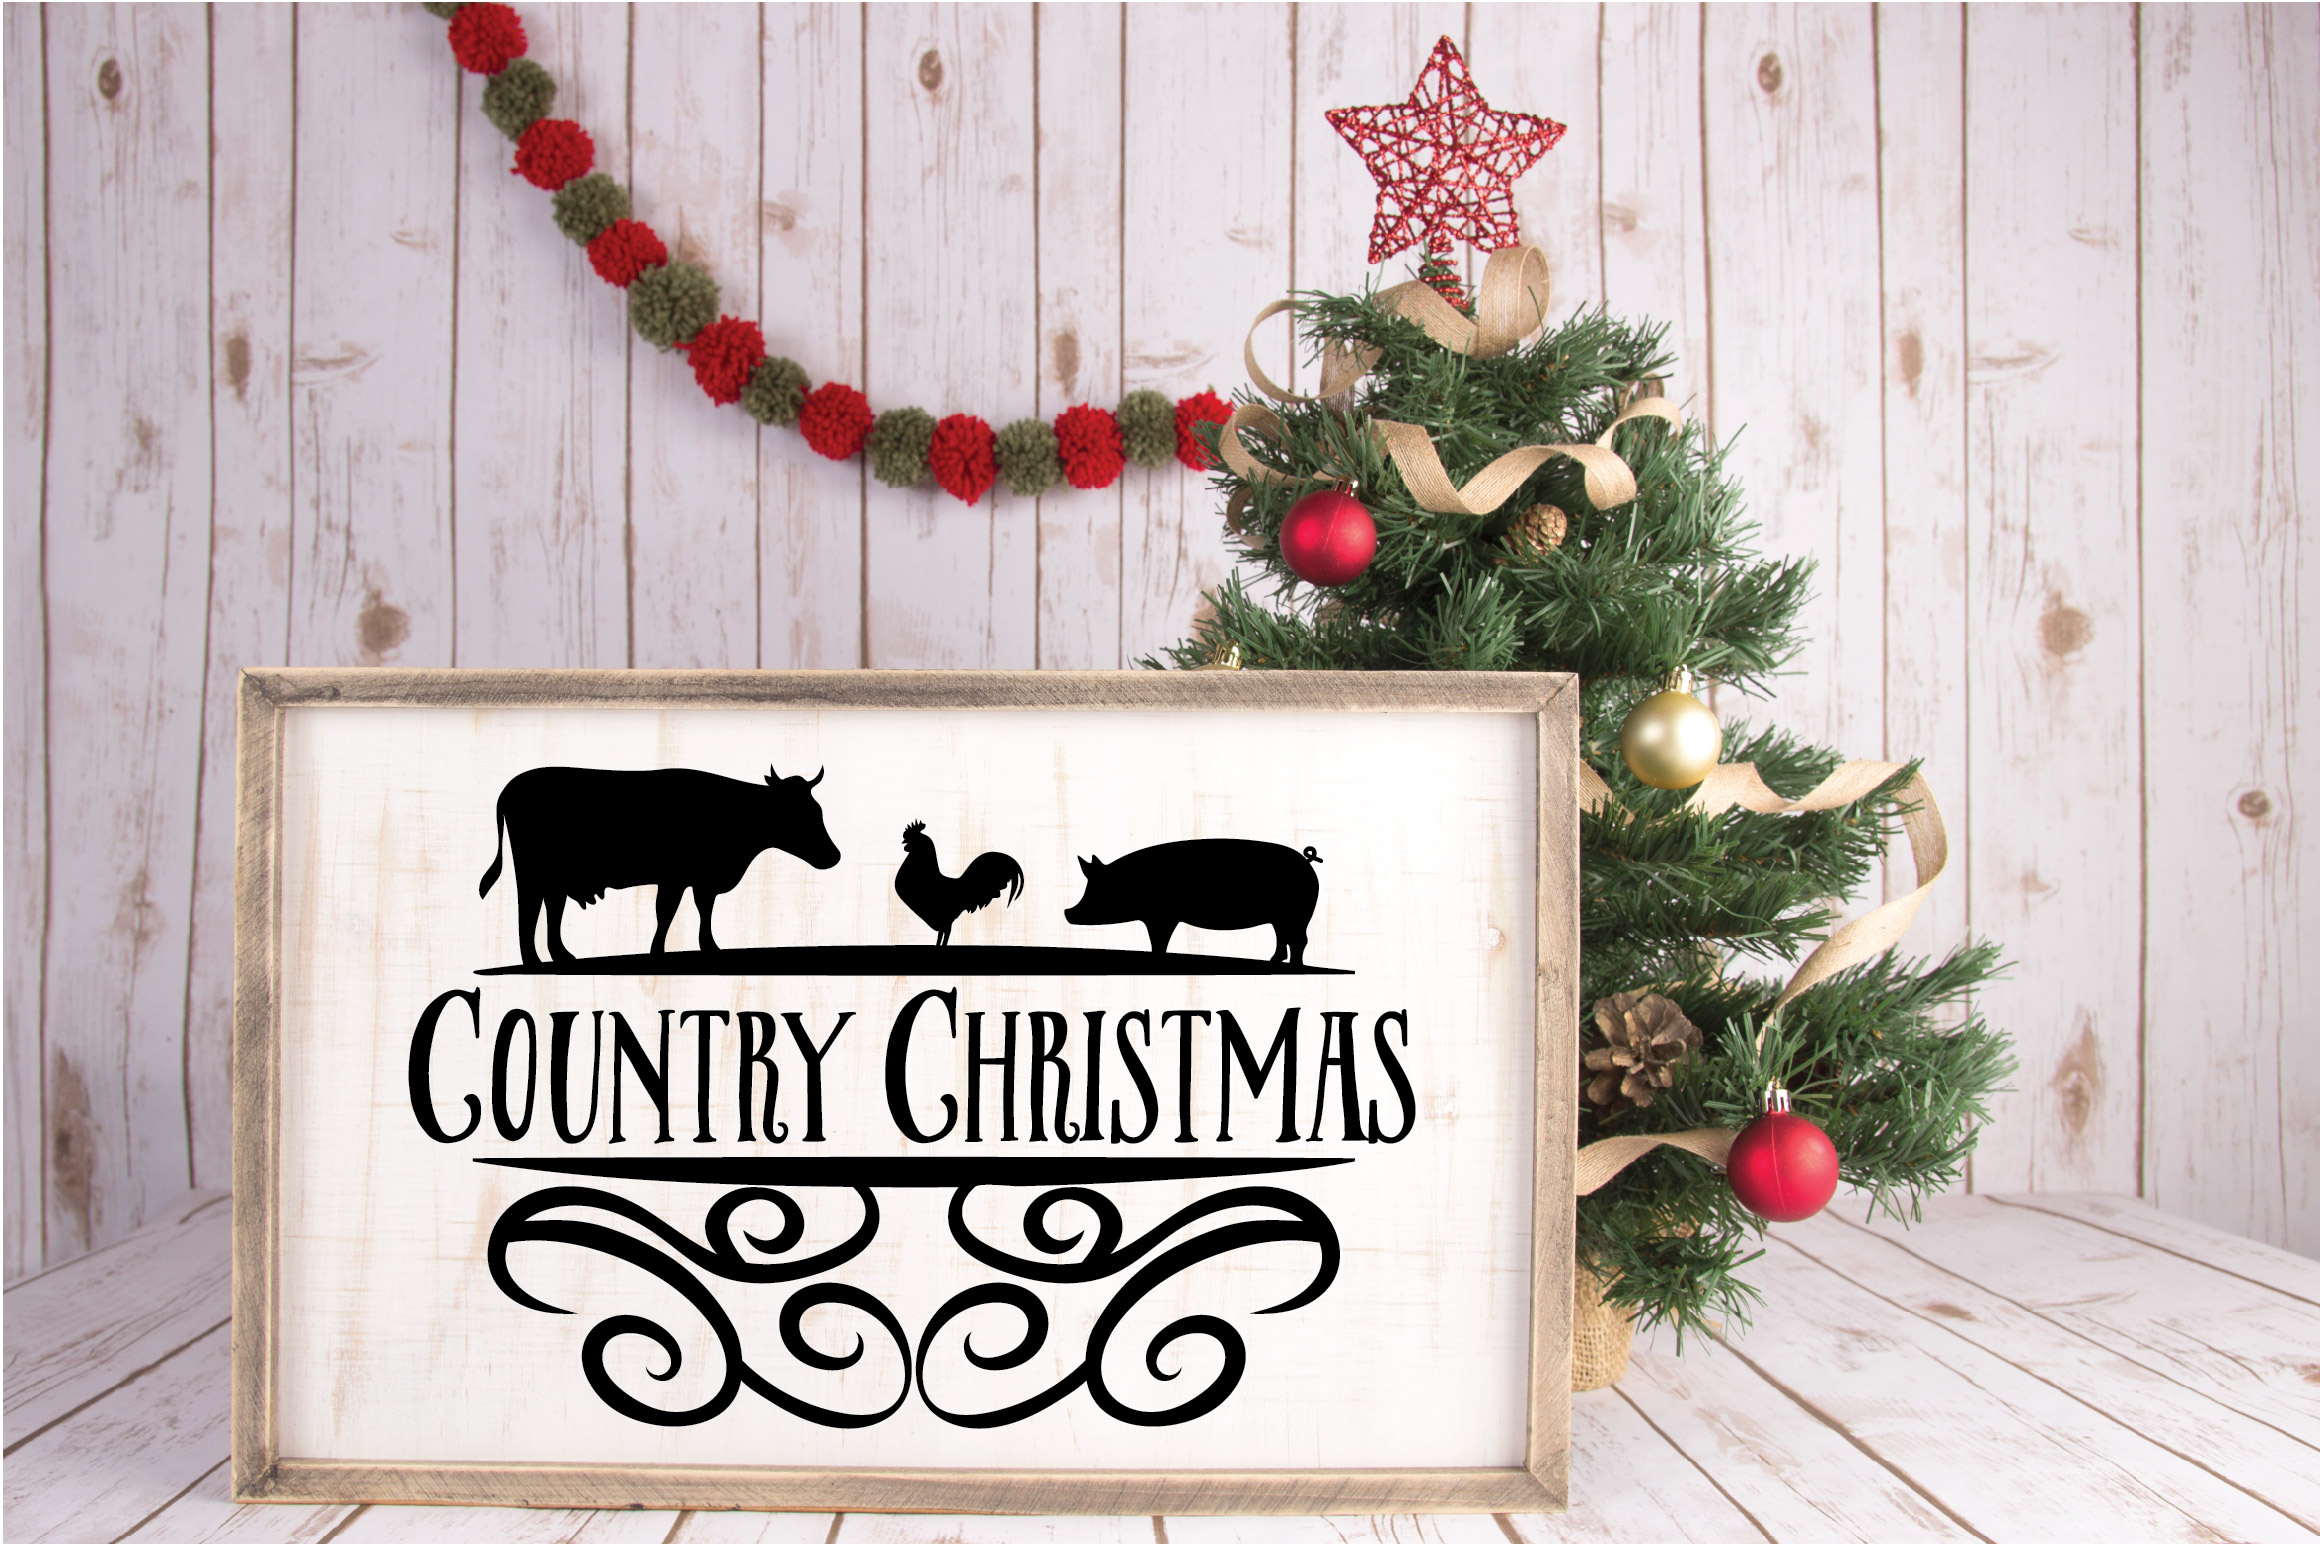 Christmas SVG Cut File - Country Christmas SVG DXF PNG EPS example image 4